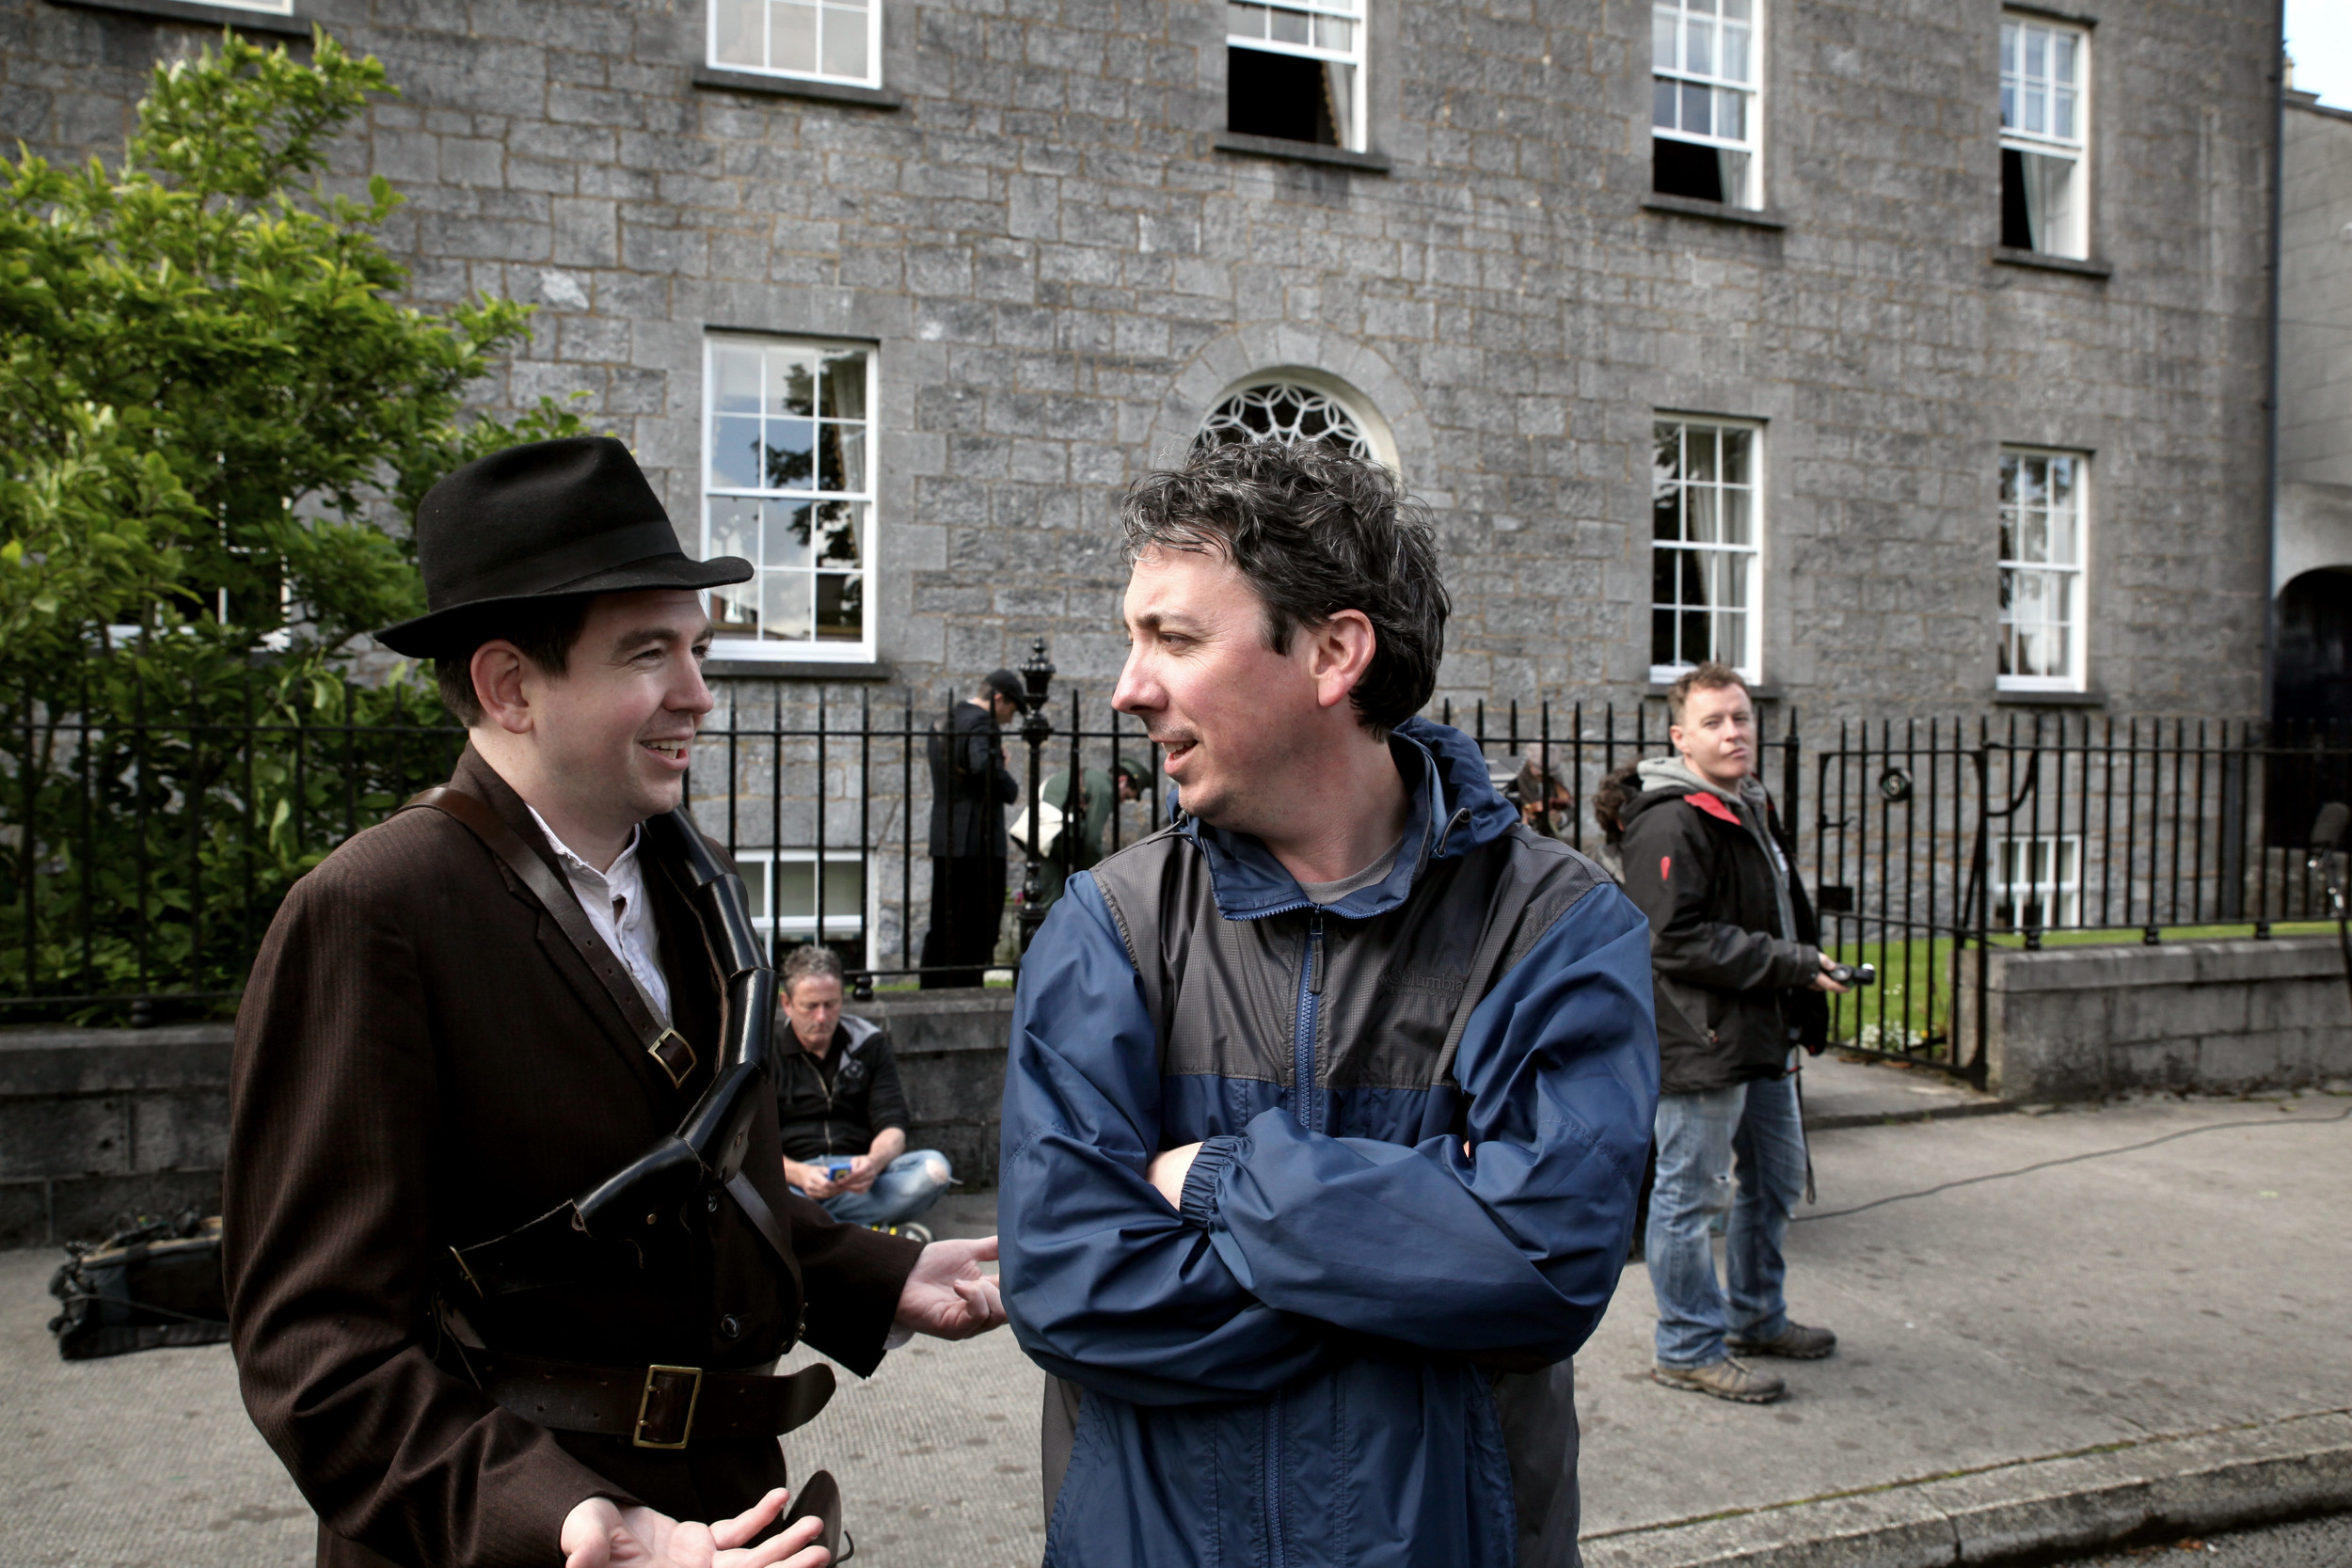 Director Keith Farrell and Cillian O'Donnachadha (Seamus Grace) during filming on the streets of Birr, Co. Offaly.